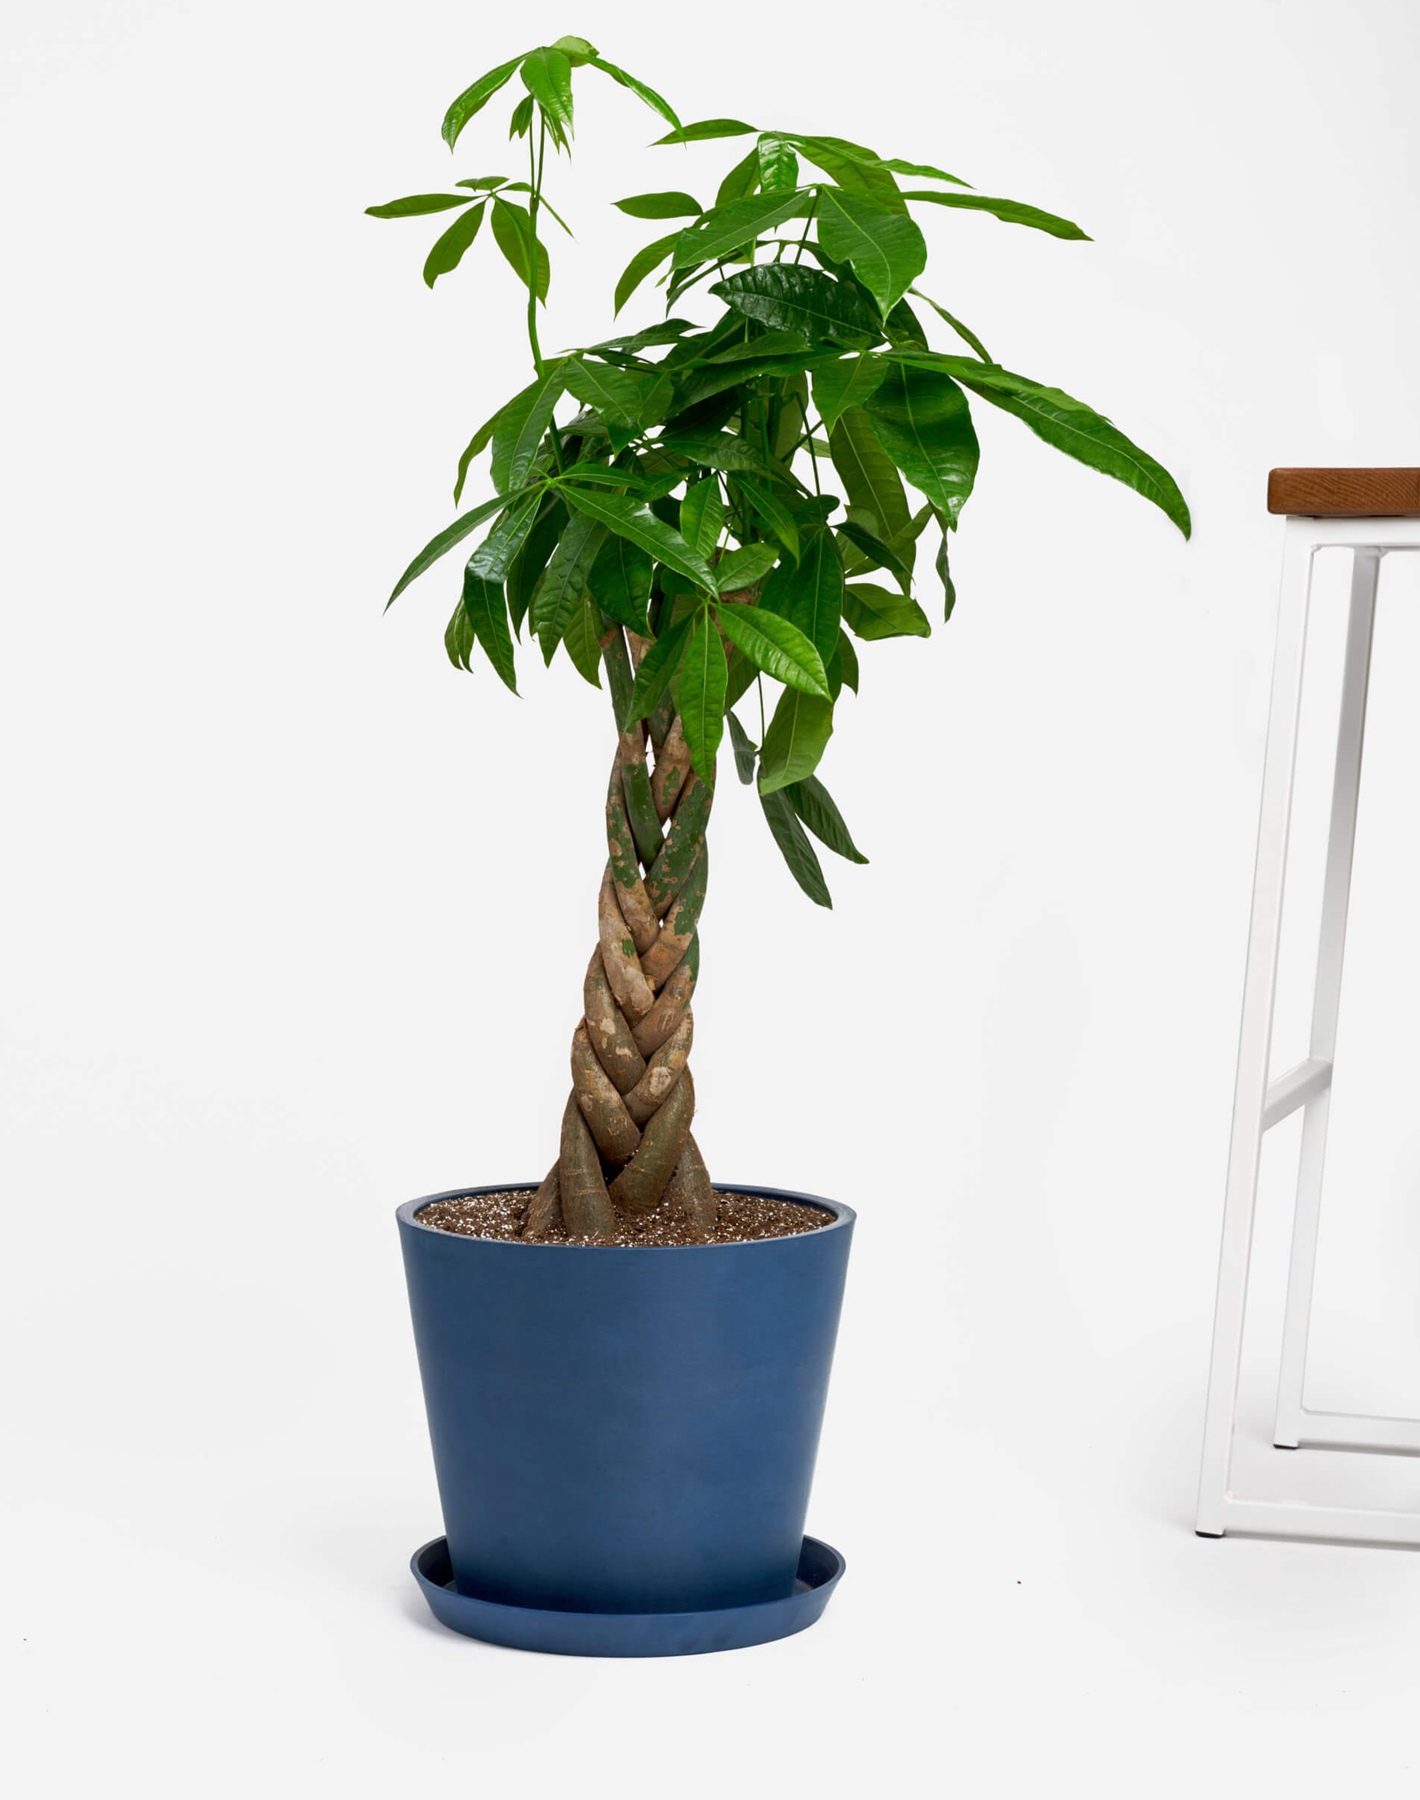 Best housewarming gifts - Bloomscape money tree